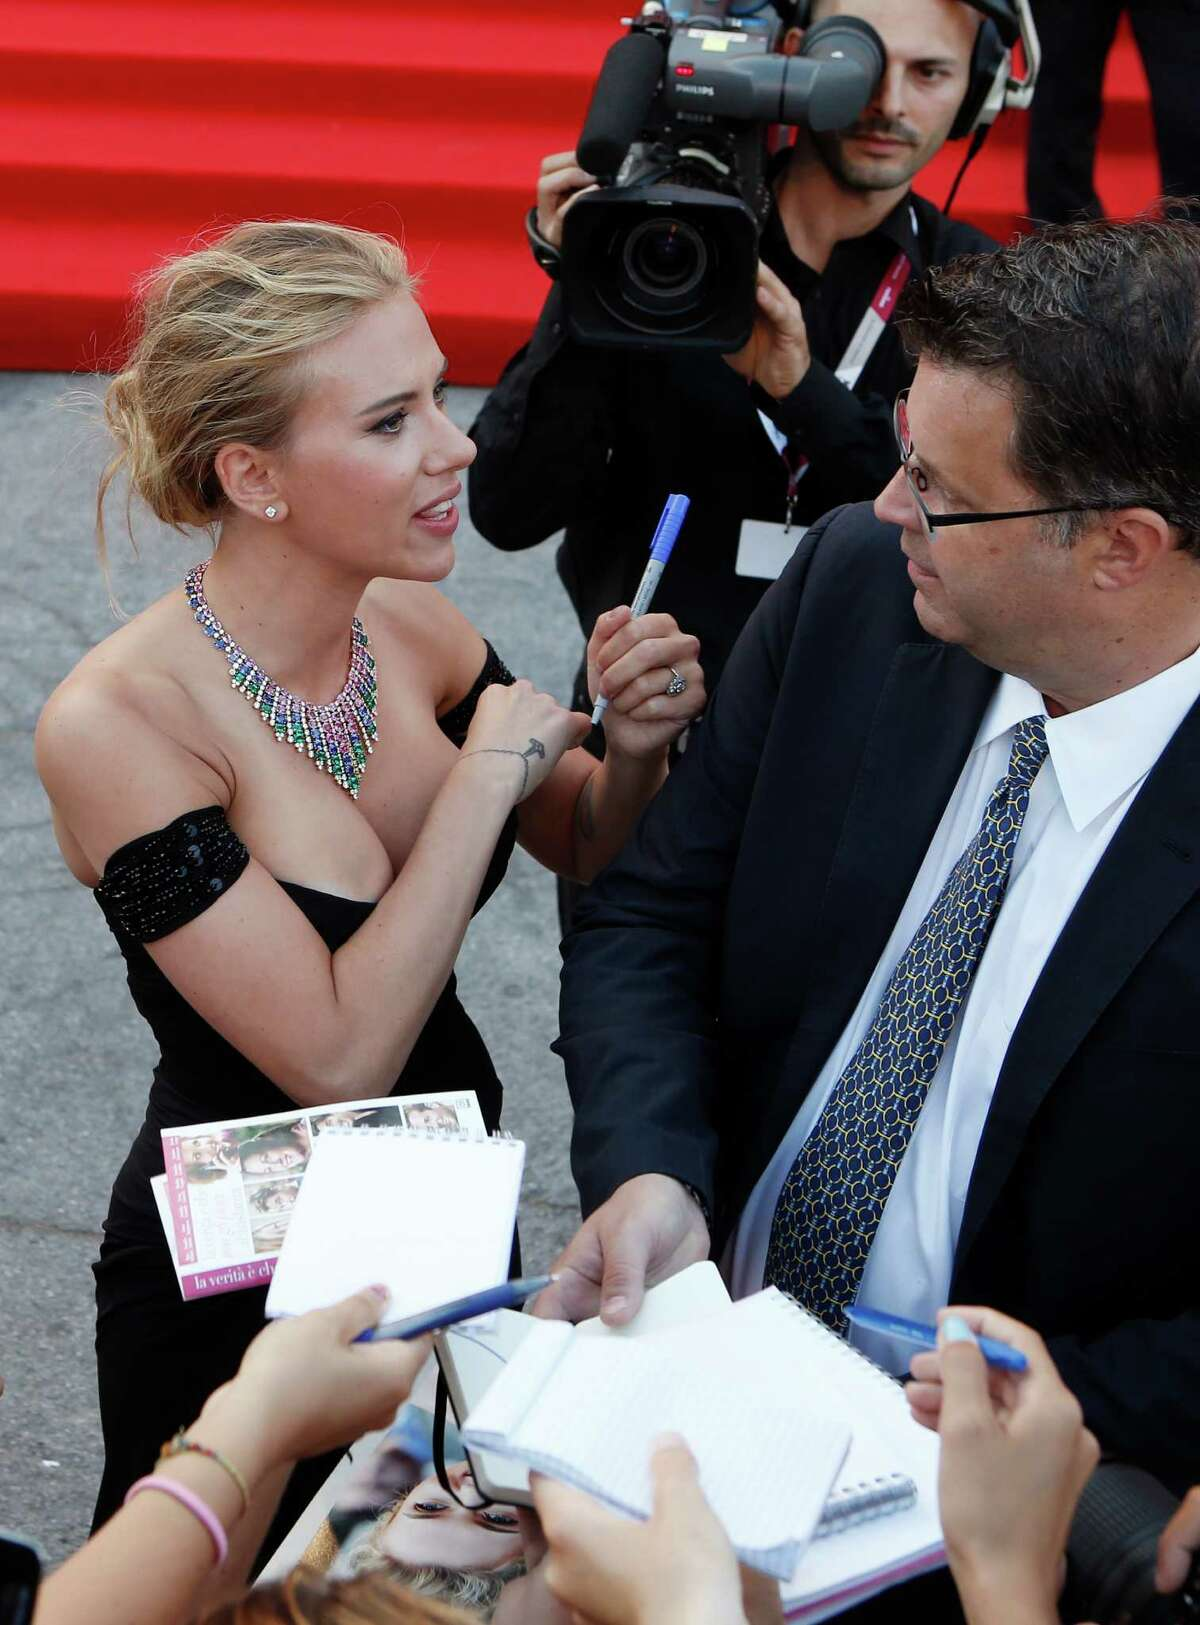 Actress Scarlett Johansson adjusts her dress as she signs autographs for members of the public as she arrives on the red carpet for the screening of the film Under The Skin at the 70th edition of the Venice Film Festival held from Aug. 28 through Sept. 7, in Venice, Italy, Tuesday, Sept. 3, 2013.